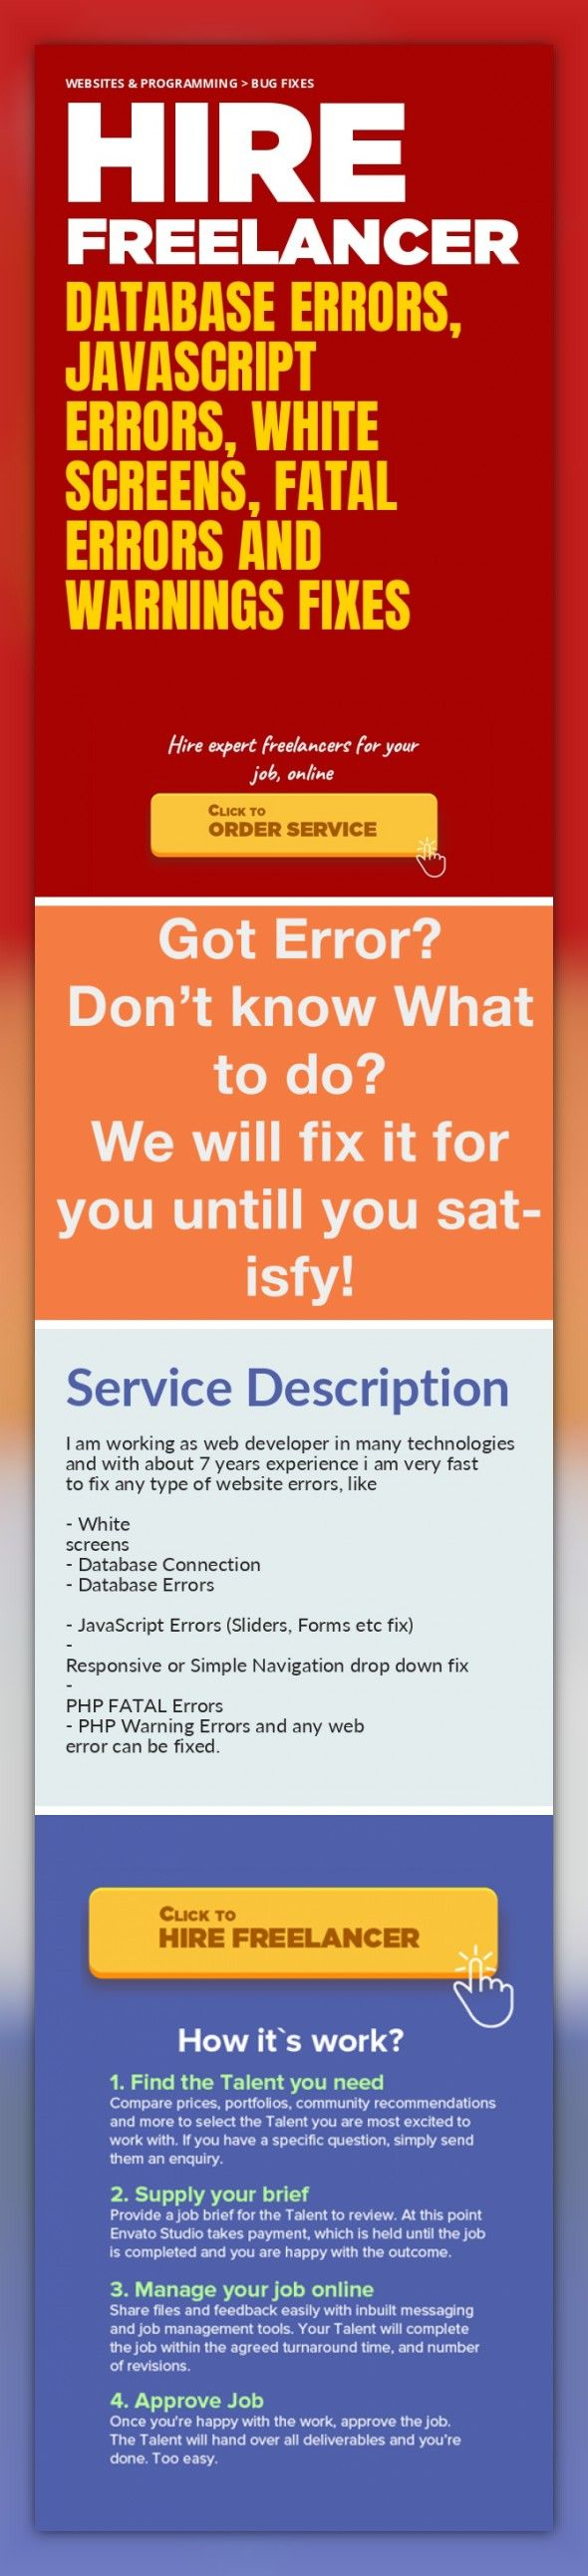 Database Errors, JavaScript Errors, White Screens, Fatal Errors and Warnings Fixes Websites & Programming, Bug Fixes   I am working as web developer in many technologies and with about 7 years experience i am very fast to fix any type of website errors, like     - White screens  - Database Connection   - Database Errors   - JavaScript Errors (Sliders, Forms etc fix)  - Responsive or Simple Navigat...